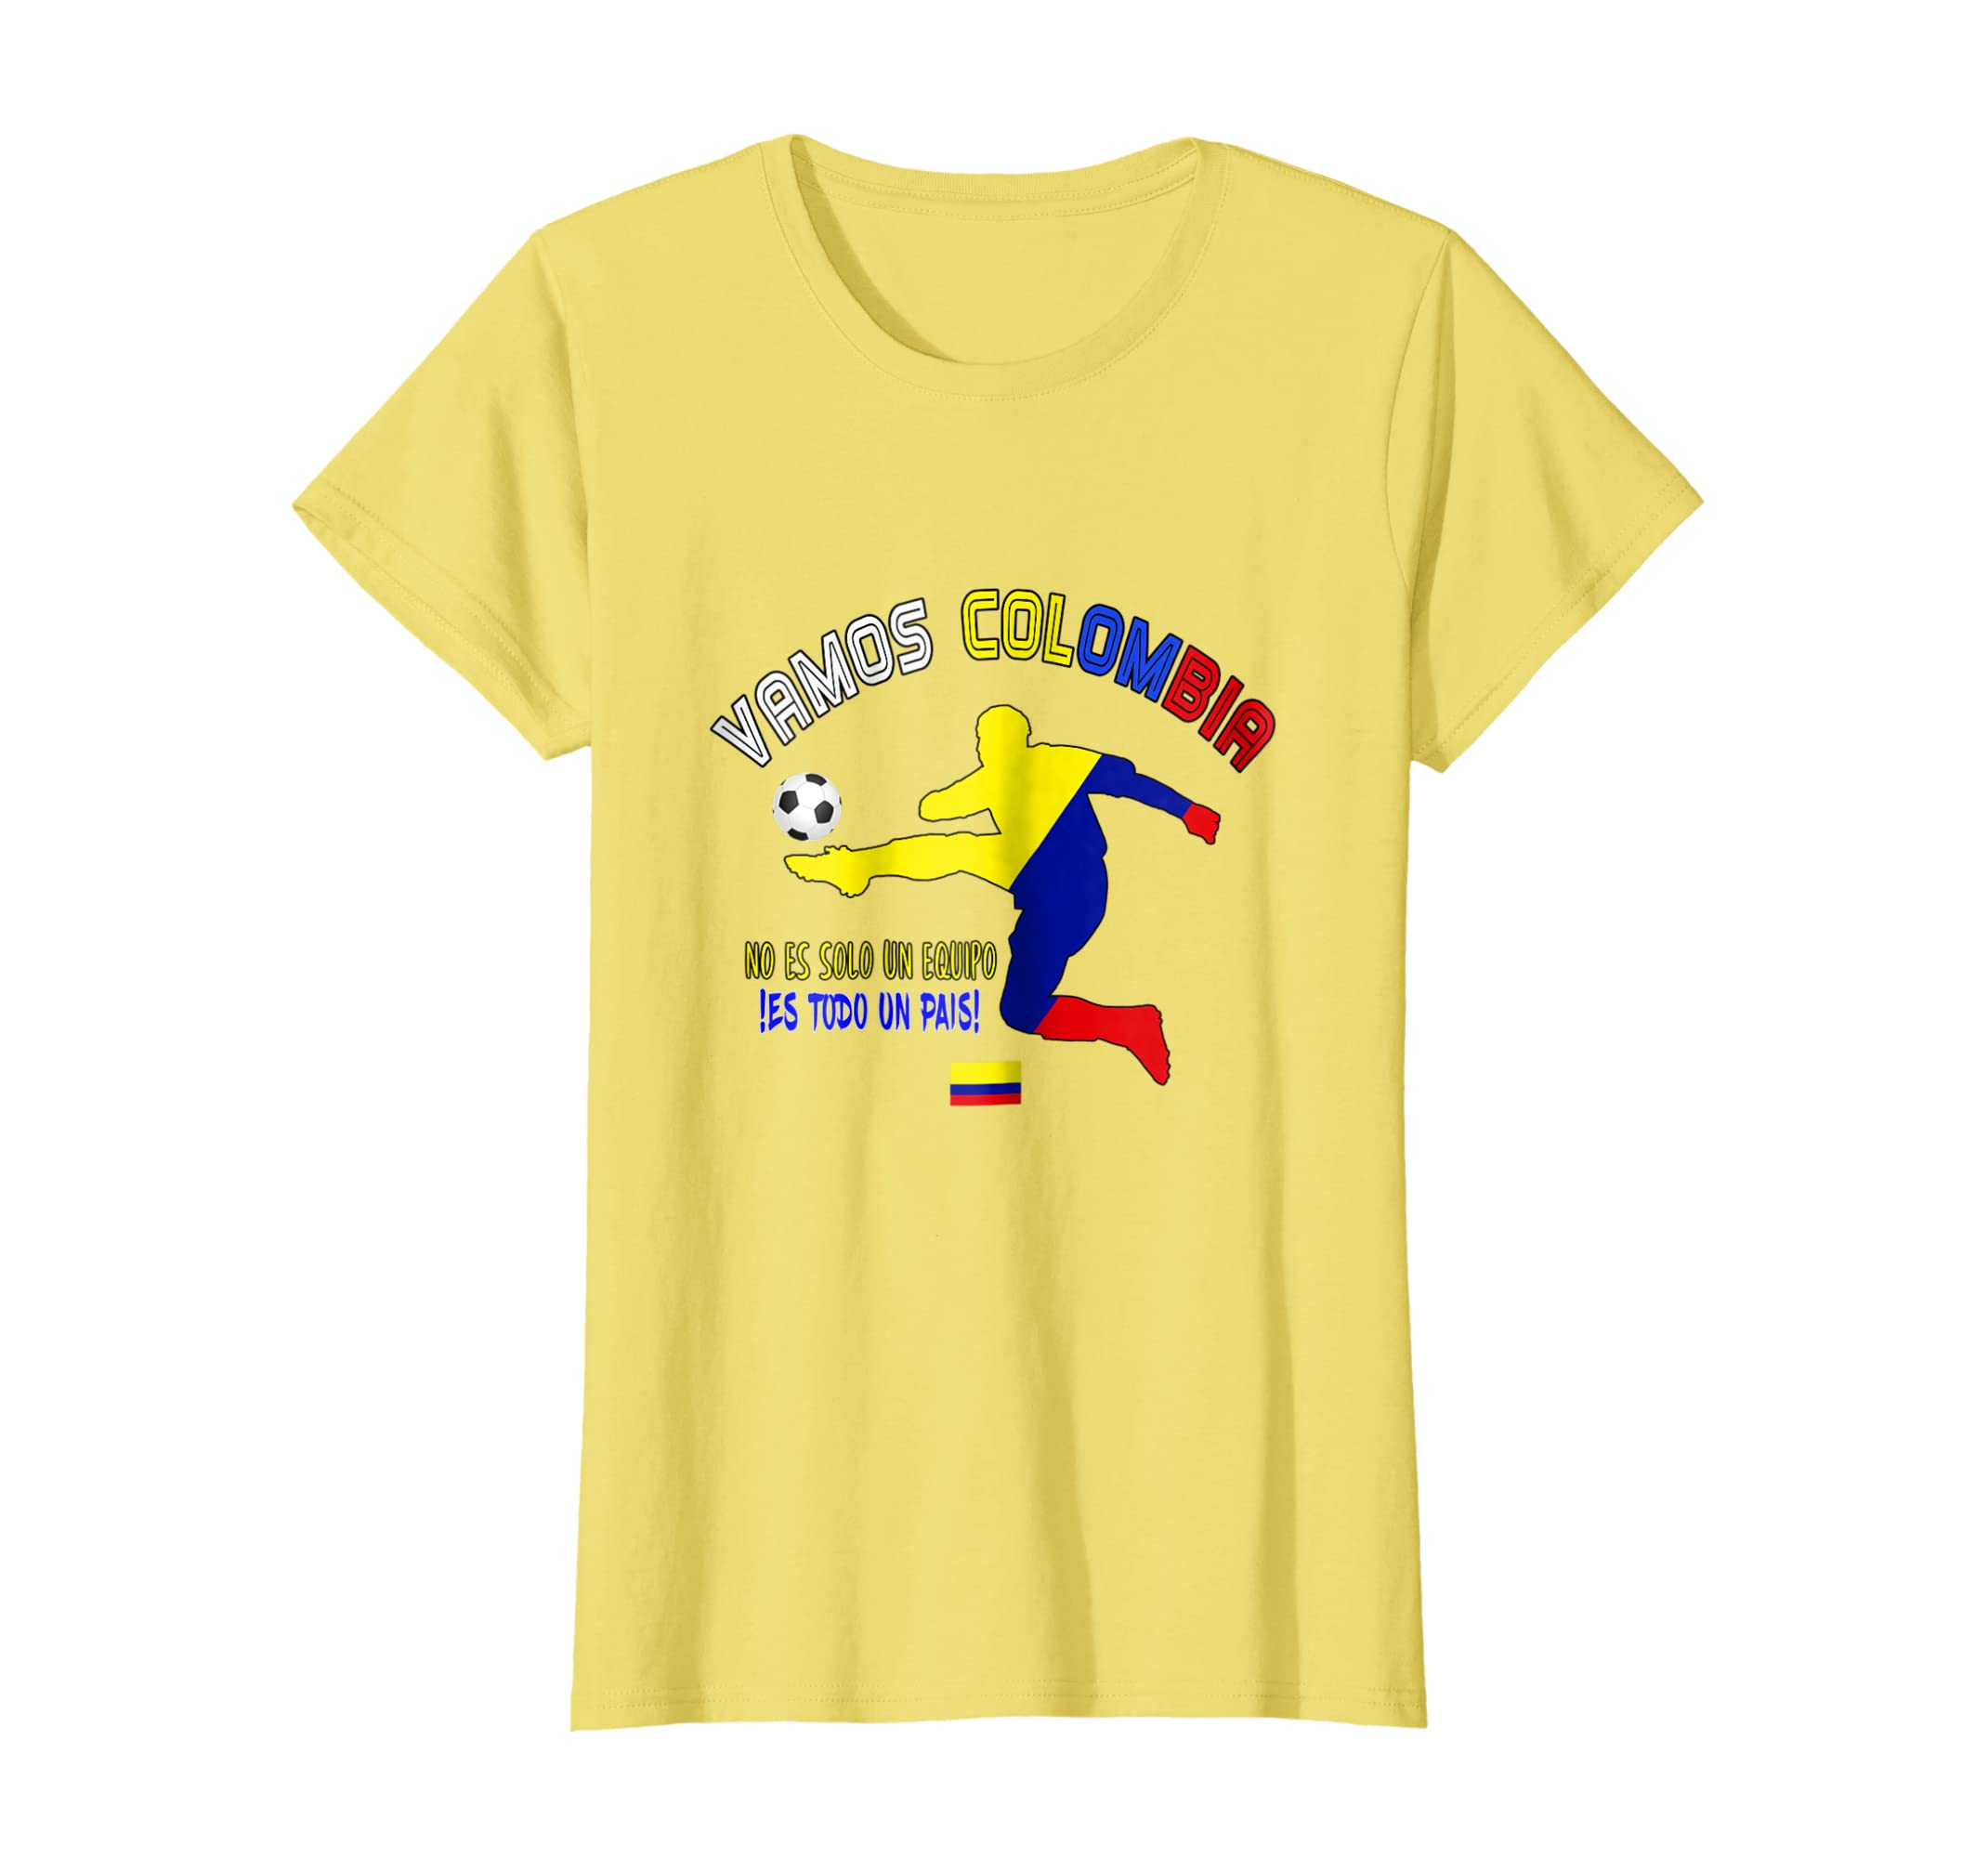 ae0190c6172 Amazon.com  Colombia Colombian Soccer Team 2018 T Shirt Football Fan   Clothing